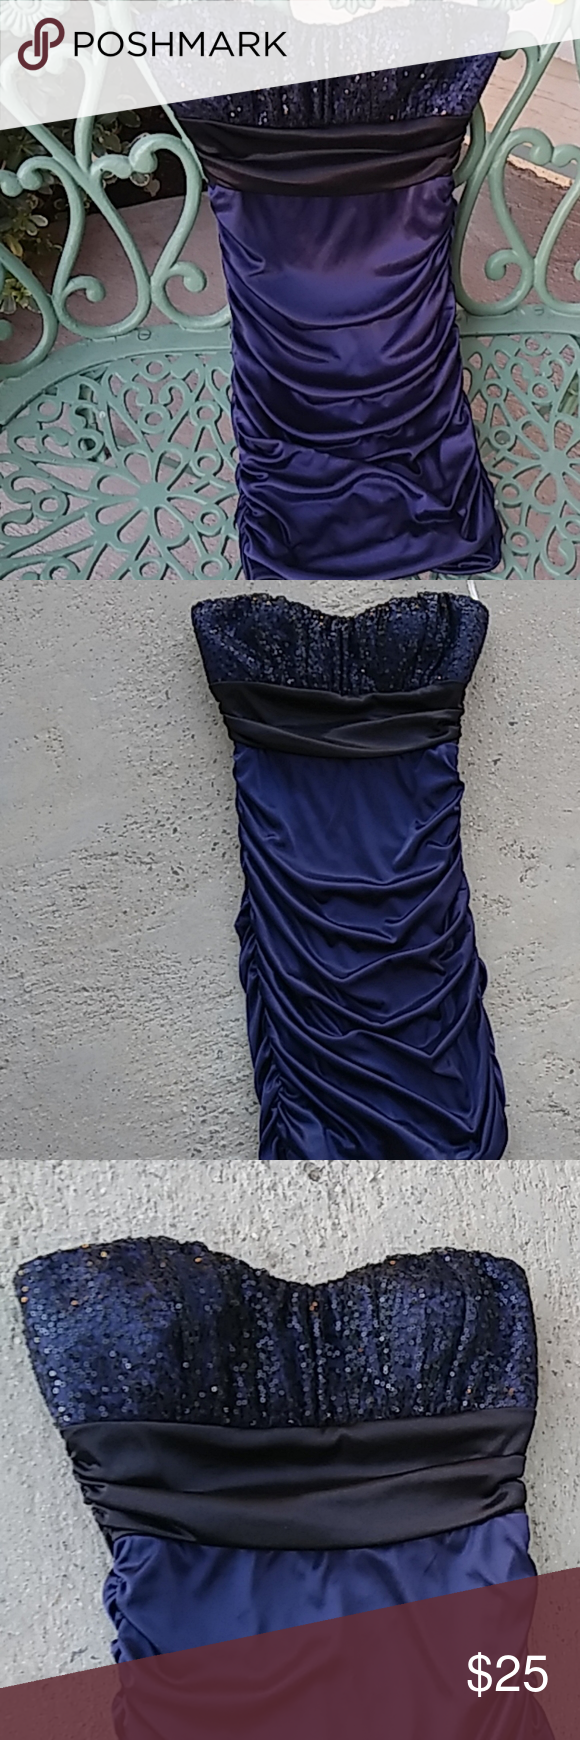 Speechless Royal Blue mini Size small Super cute mini for a formal cocktail party, or any high school dance. Size small, never worn . 100% polyester. Pretty beaded bodice. Size small Speechless Dresses Mini #schooldancedresses